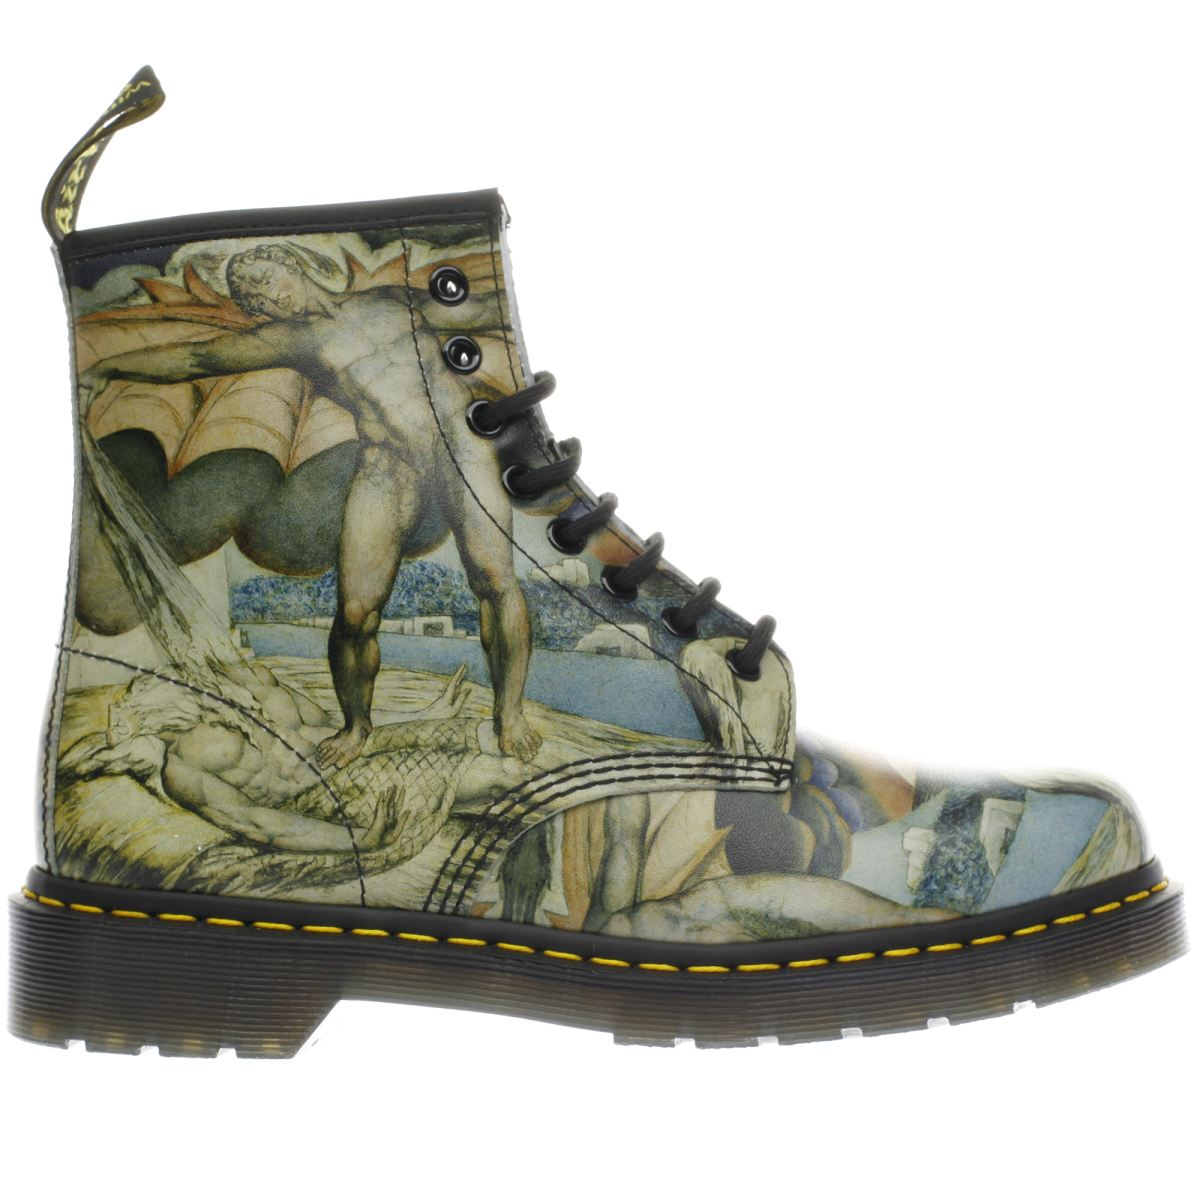 dr martens black & stone 1460 8 eye william blake boots